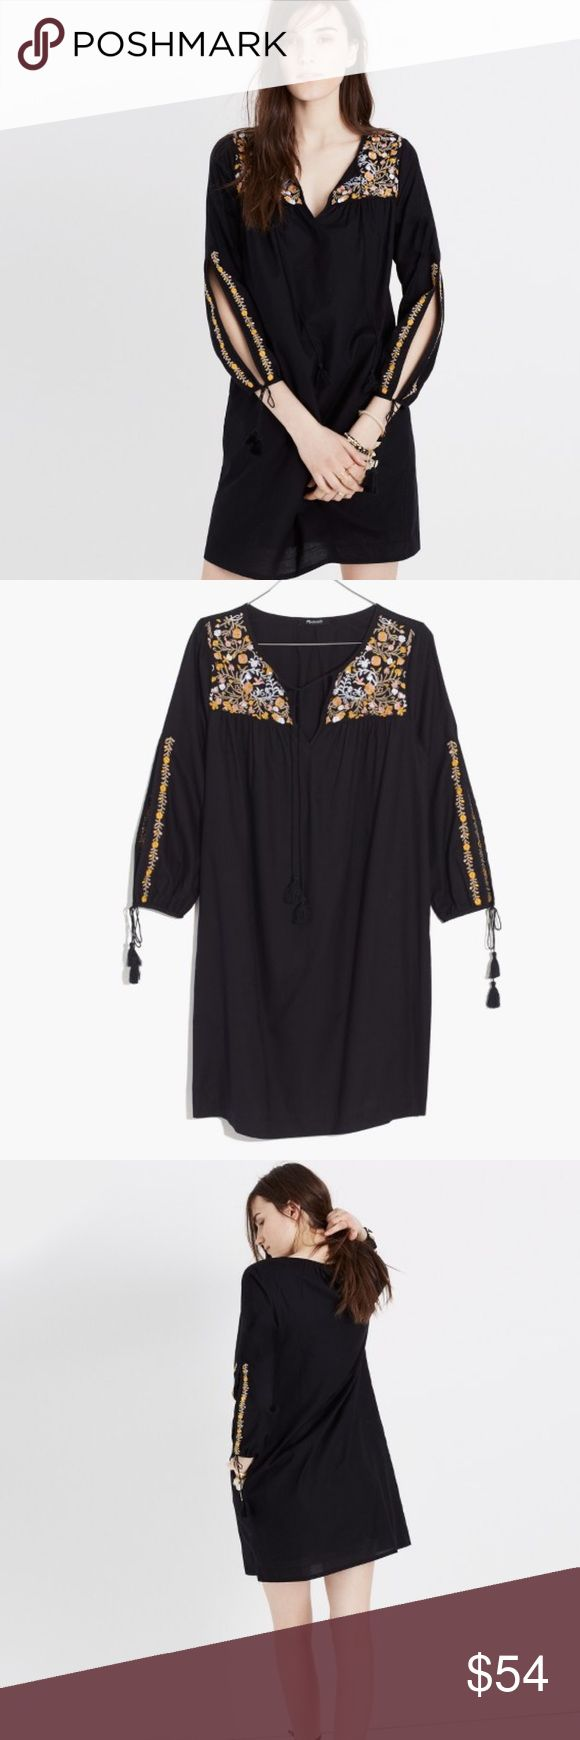 "Madewell XS Tunic dress festival boho Madewell Women's XS Tunic dress Slit sleeve 3/4 Black Embroidered multicolor birds flowers  Tassel details excellent condition  100% cotton  Measurements laying flat:  Armpit to armpit: 20"" Length from top center back to bottom: 31.5"" Madewell Dresses"